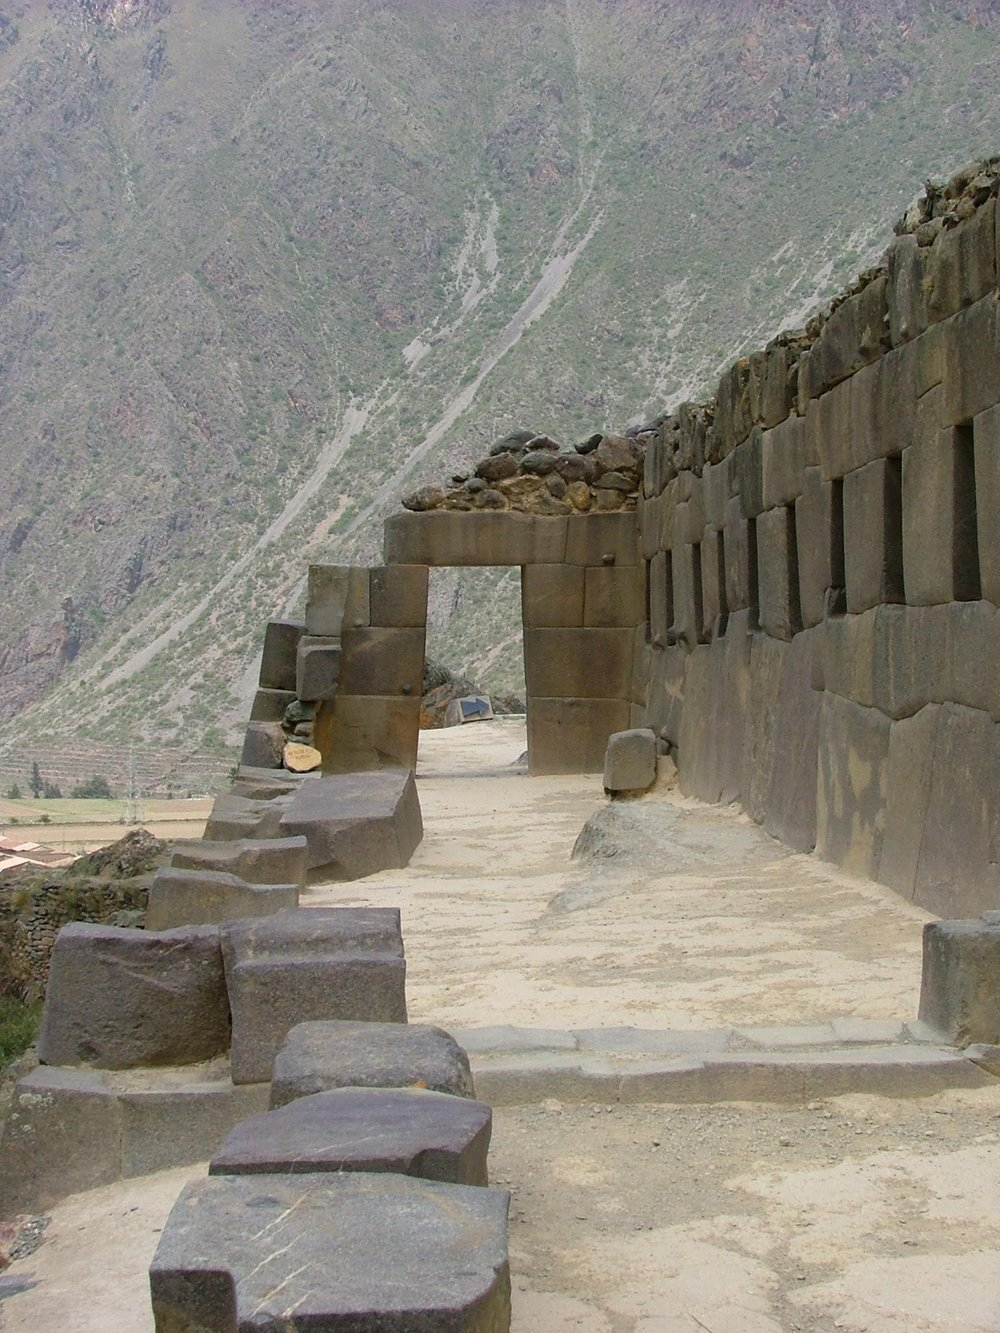 The Site   Within the Sacred Valley of the Incas near Cuzco, Ollantaytambo is famous for its Incan architecture. Steep terraces lead to a highly defensible fortress where local forces defeated the conquistadors in battle in 1536. Inside the fortress is also a ceremonial center, the stones for which were transported from over 6km away.